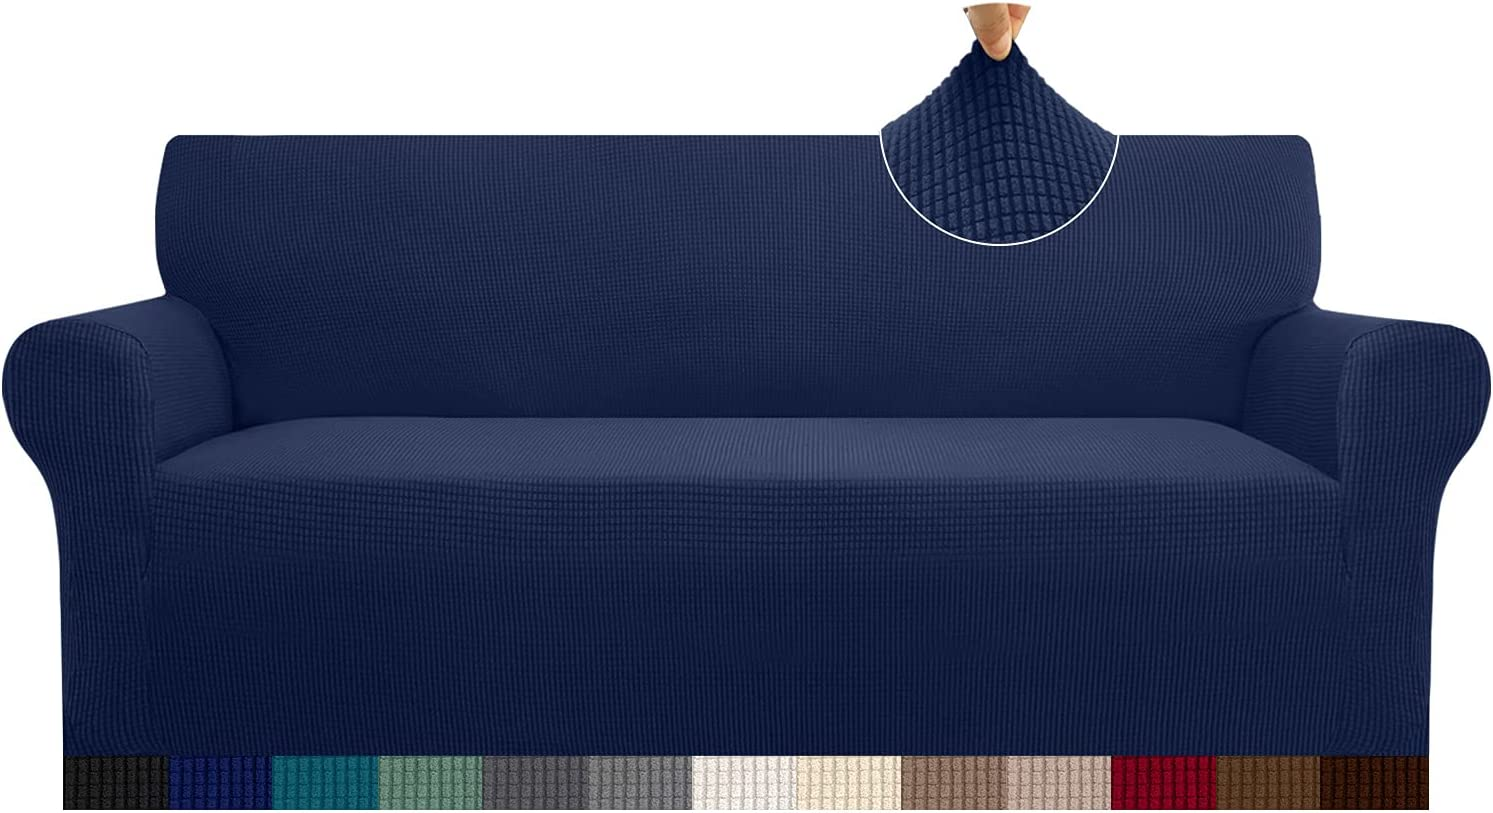 Cherrypark High Stretch Sofa Cover for 3 Cushion Couch 1 Piece Thickened Couch Cover for Dogs Anti-Slip Furniture Protector with Elastic Band(Large,Navy Blue)